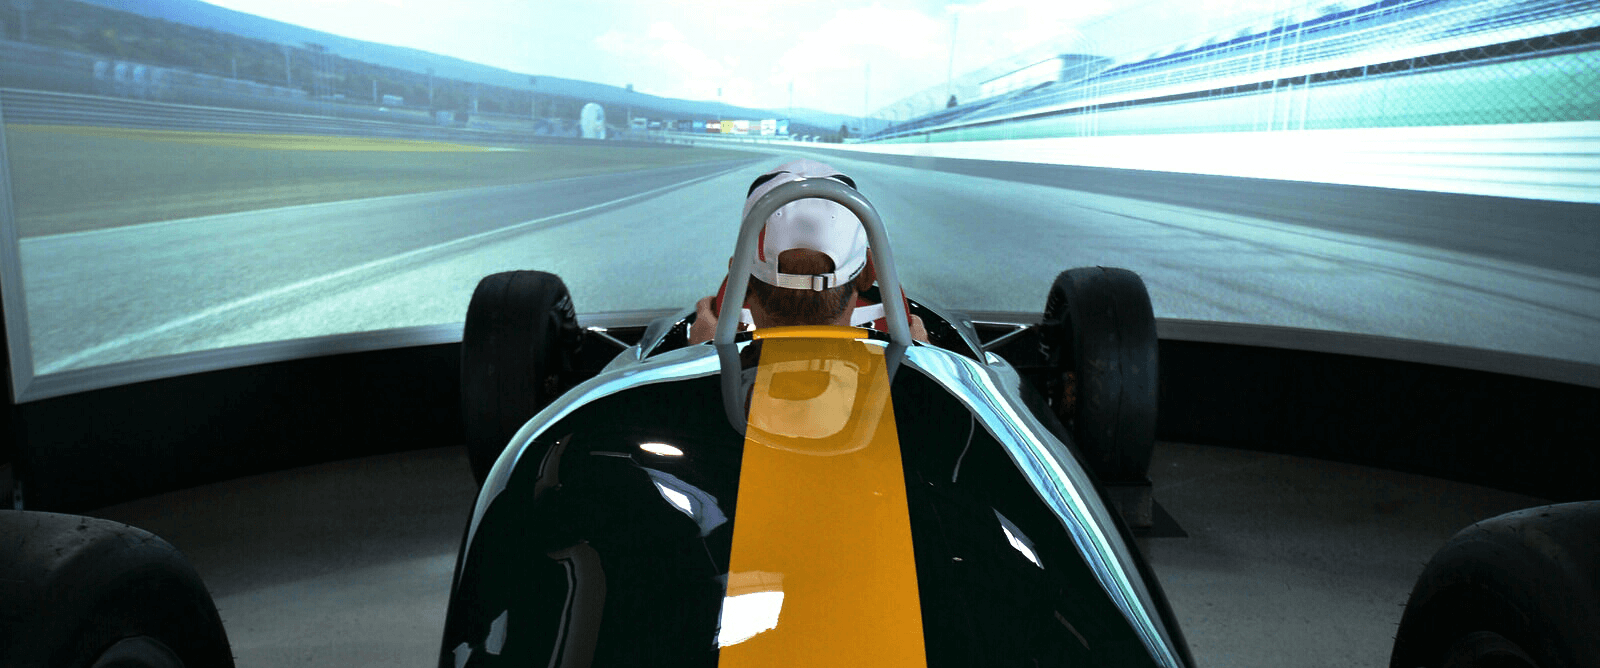 VR Motion, Corp. Race Simulators used by World Of Speed Museum - VR ...